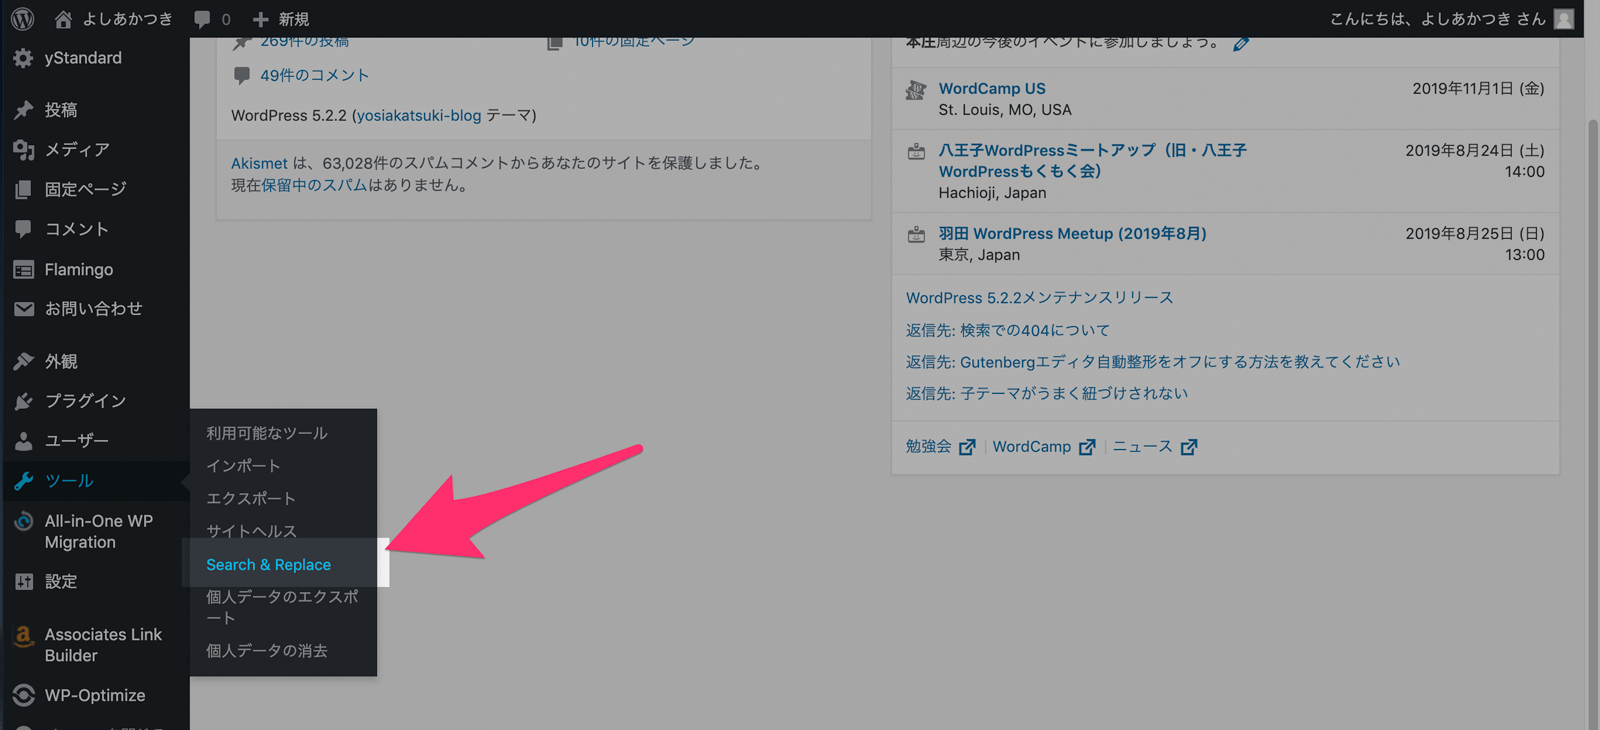 「Search & Replace」の管理画面